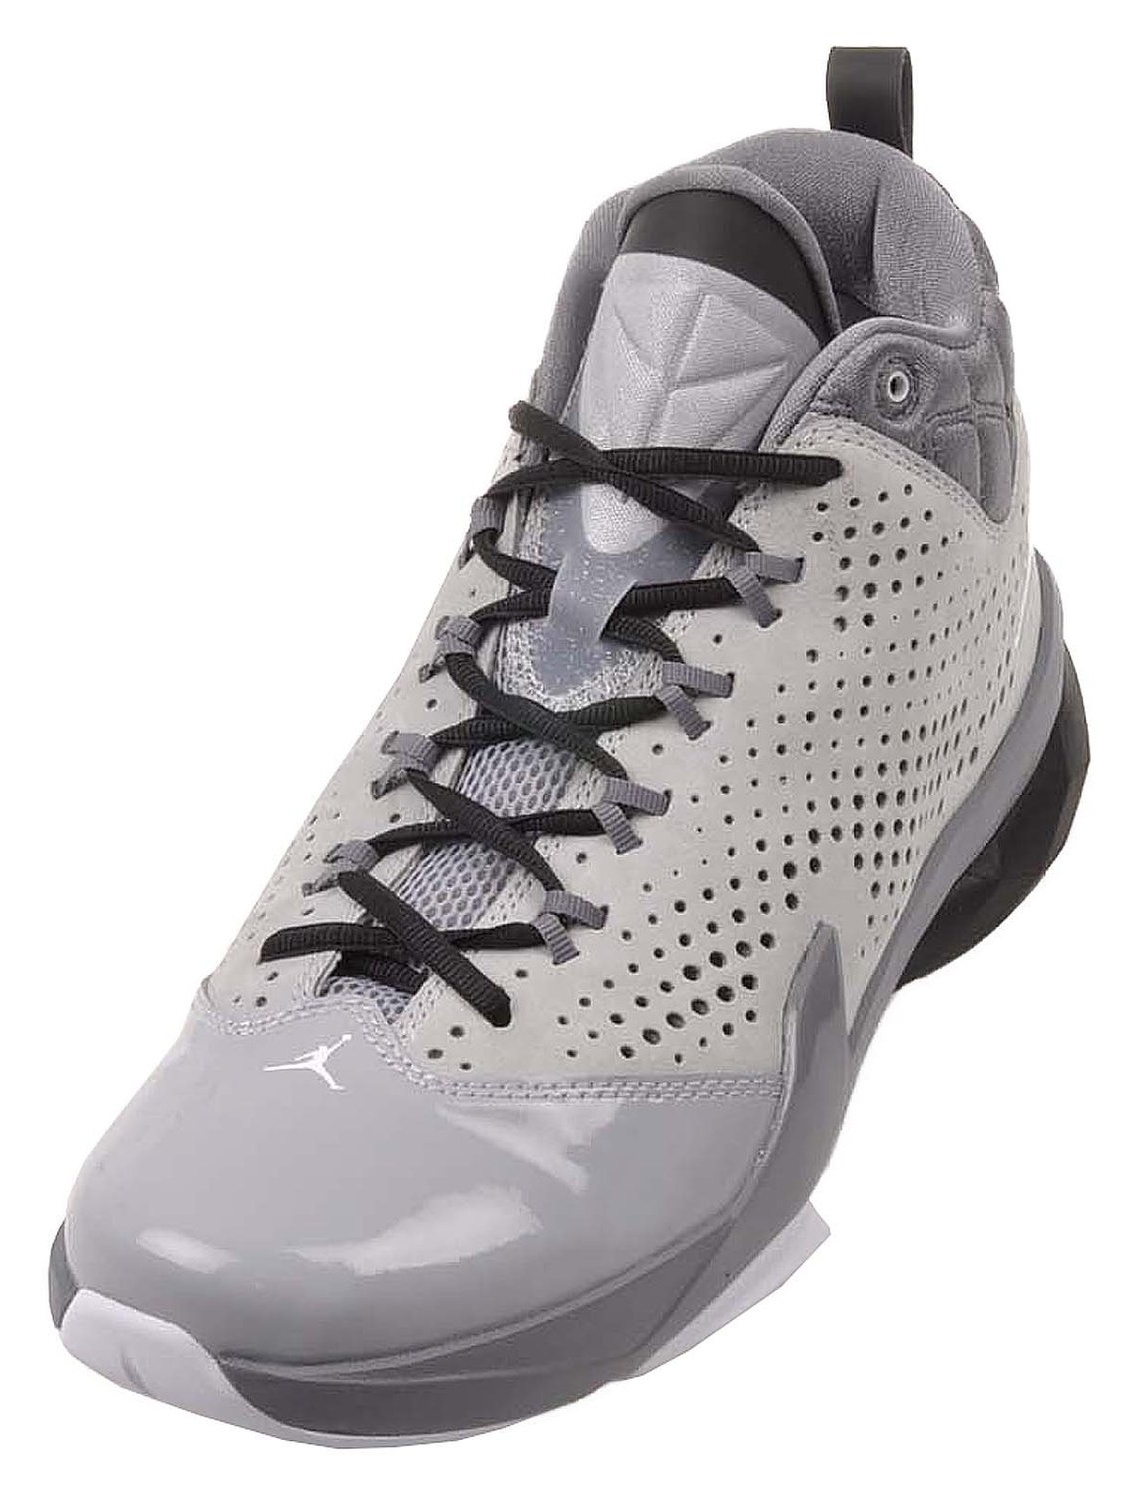 the best attitude 2efe0 34d4a Jordan Nike Men s Flight Time 14.5 Basketball Shoes - Walmart.com